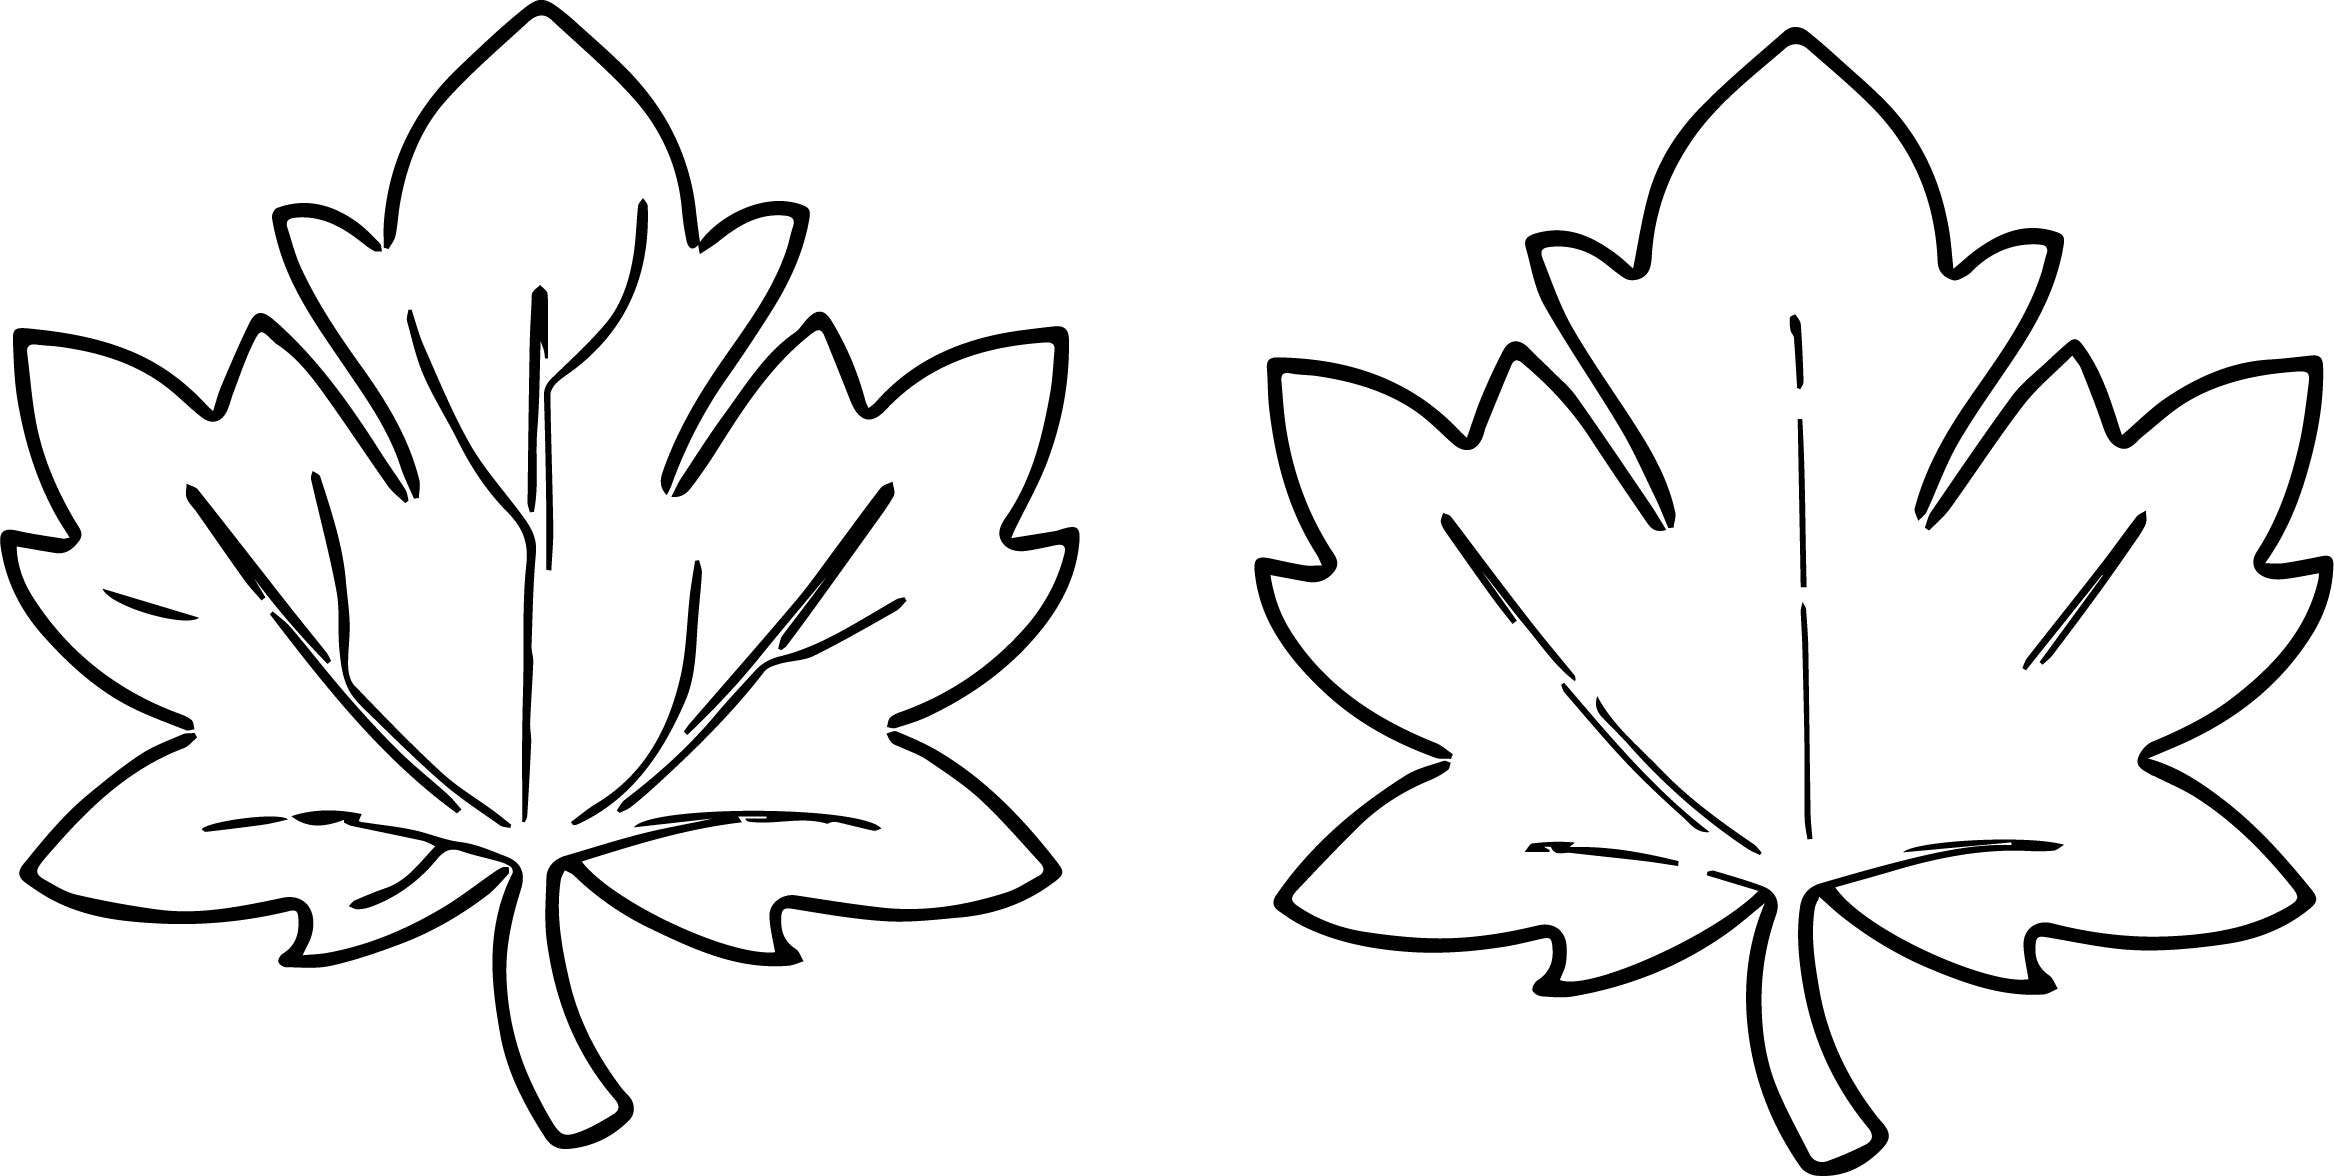 Fall leaves images for fall leaf coloring page for Leave coloring pages